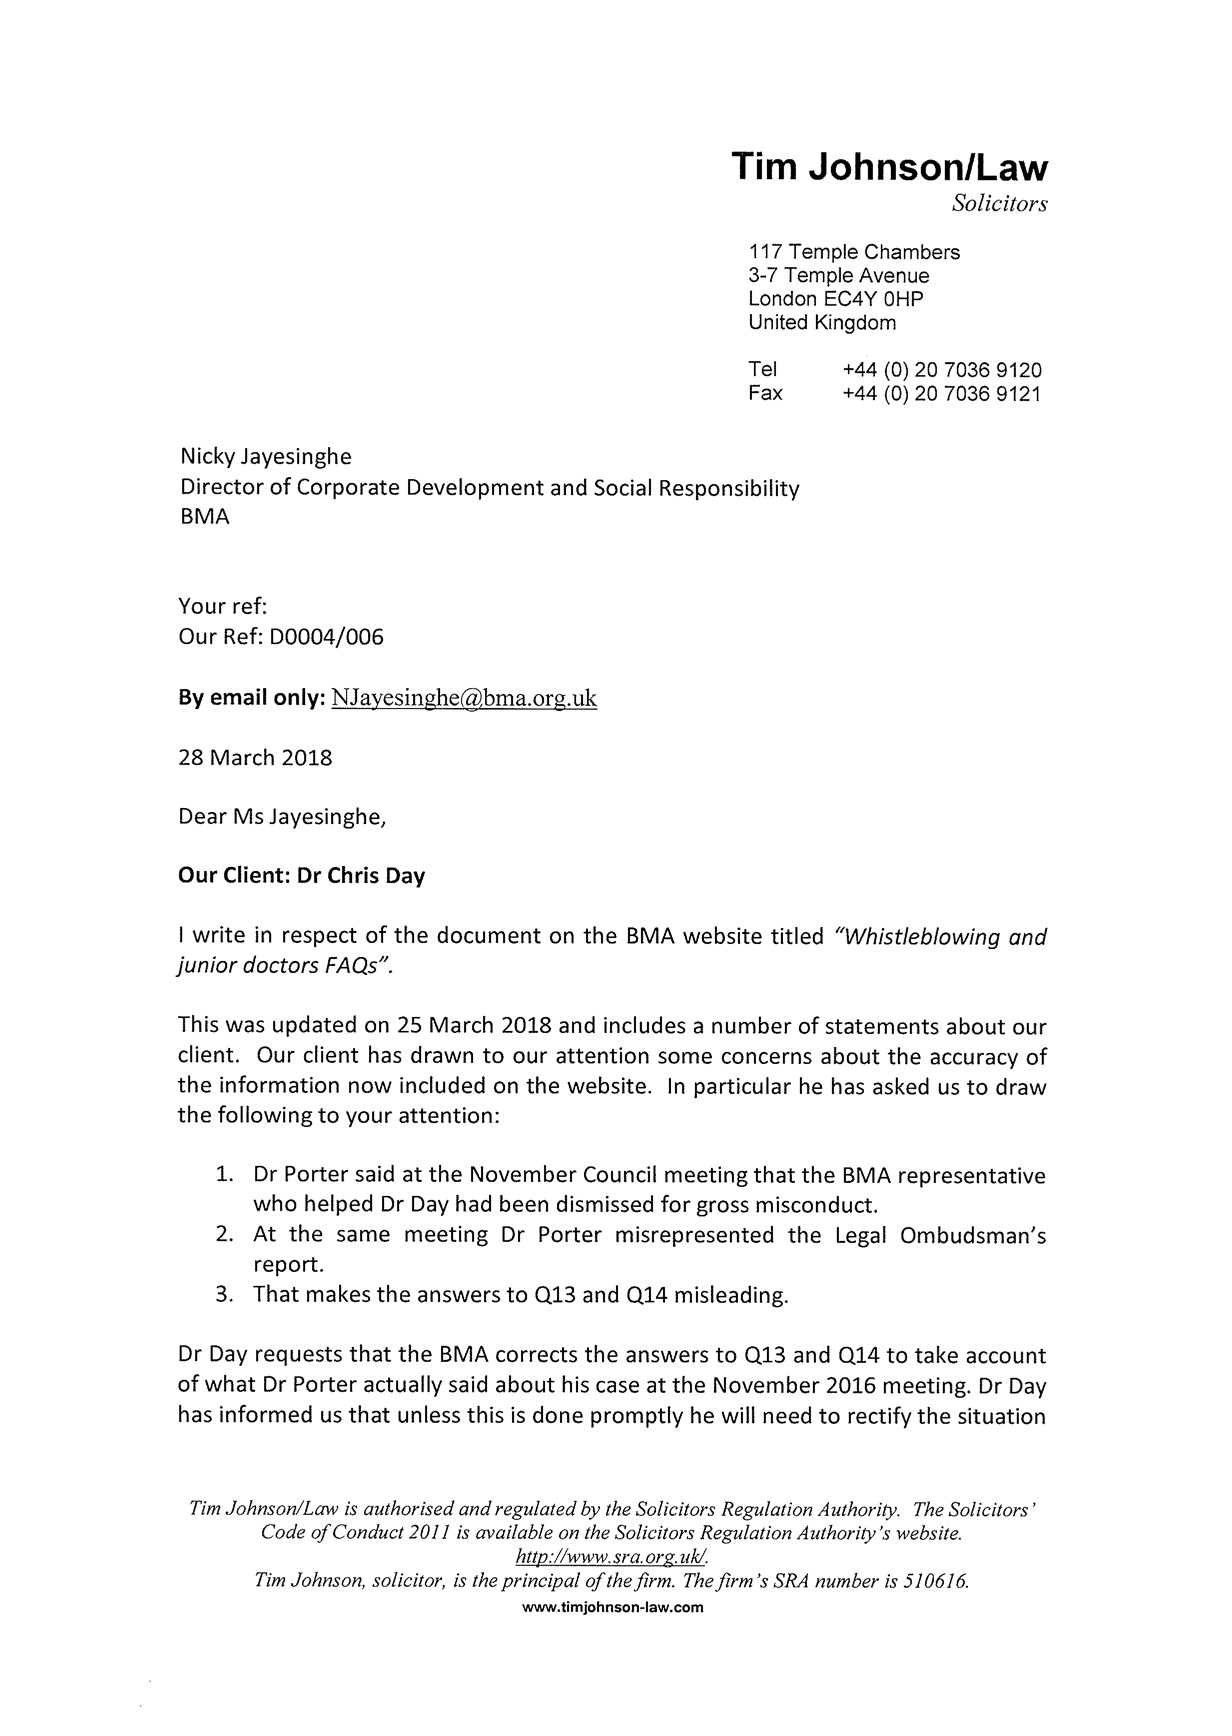 Legal letter challenging false statements from the BMA